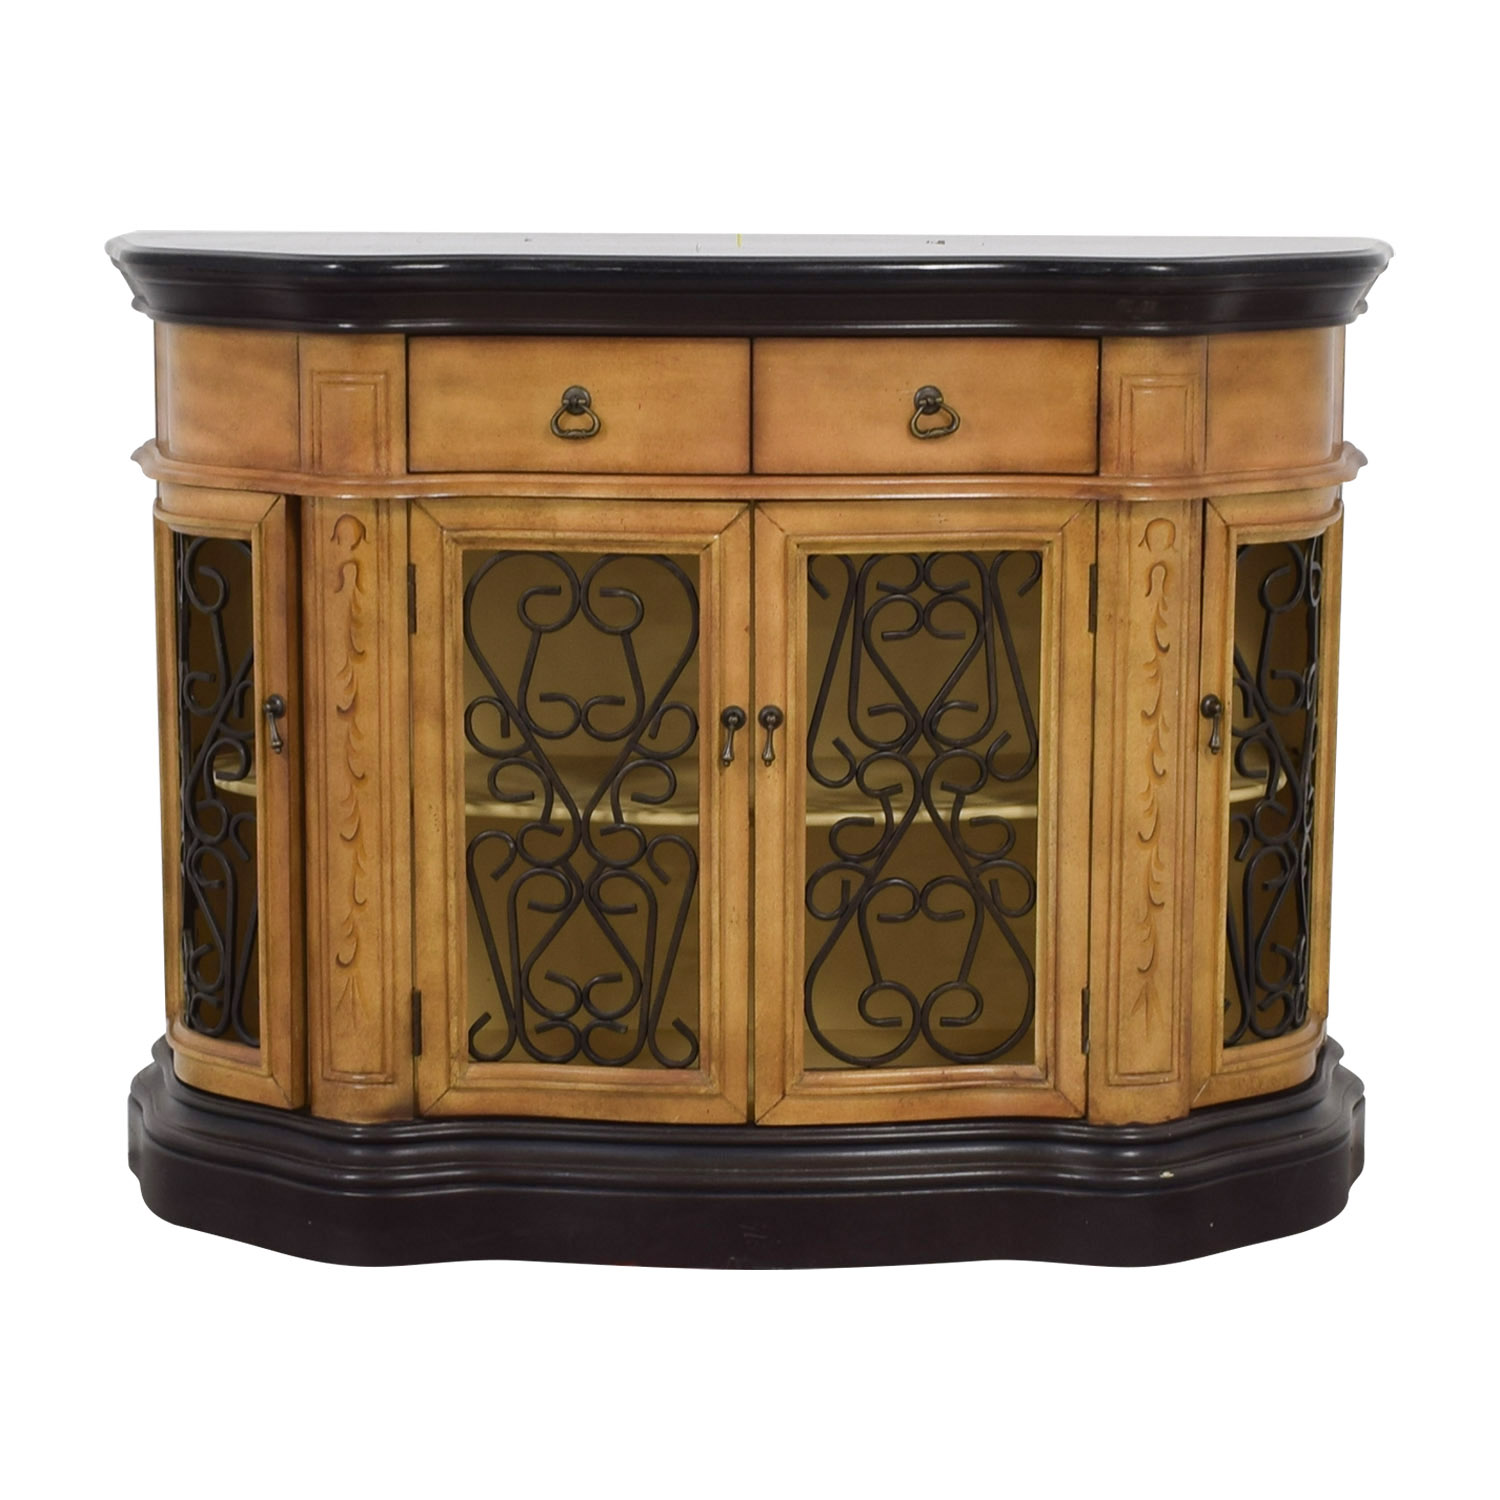 buy Raymour & Flanigan Raymour & Flanigan Canterbury Credenza online